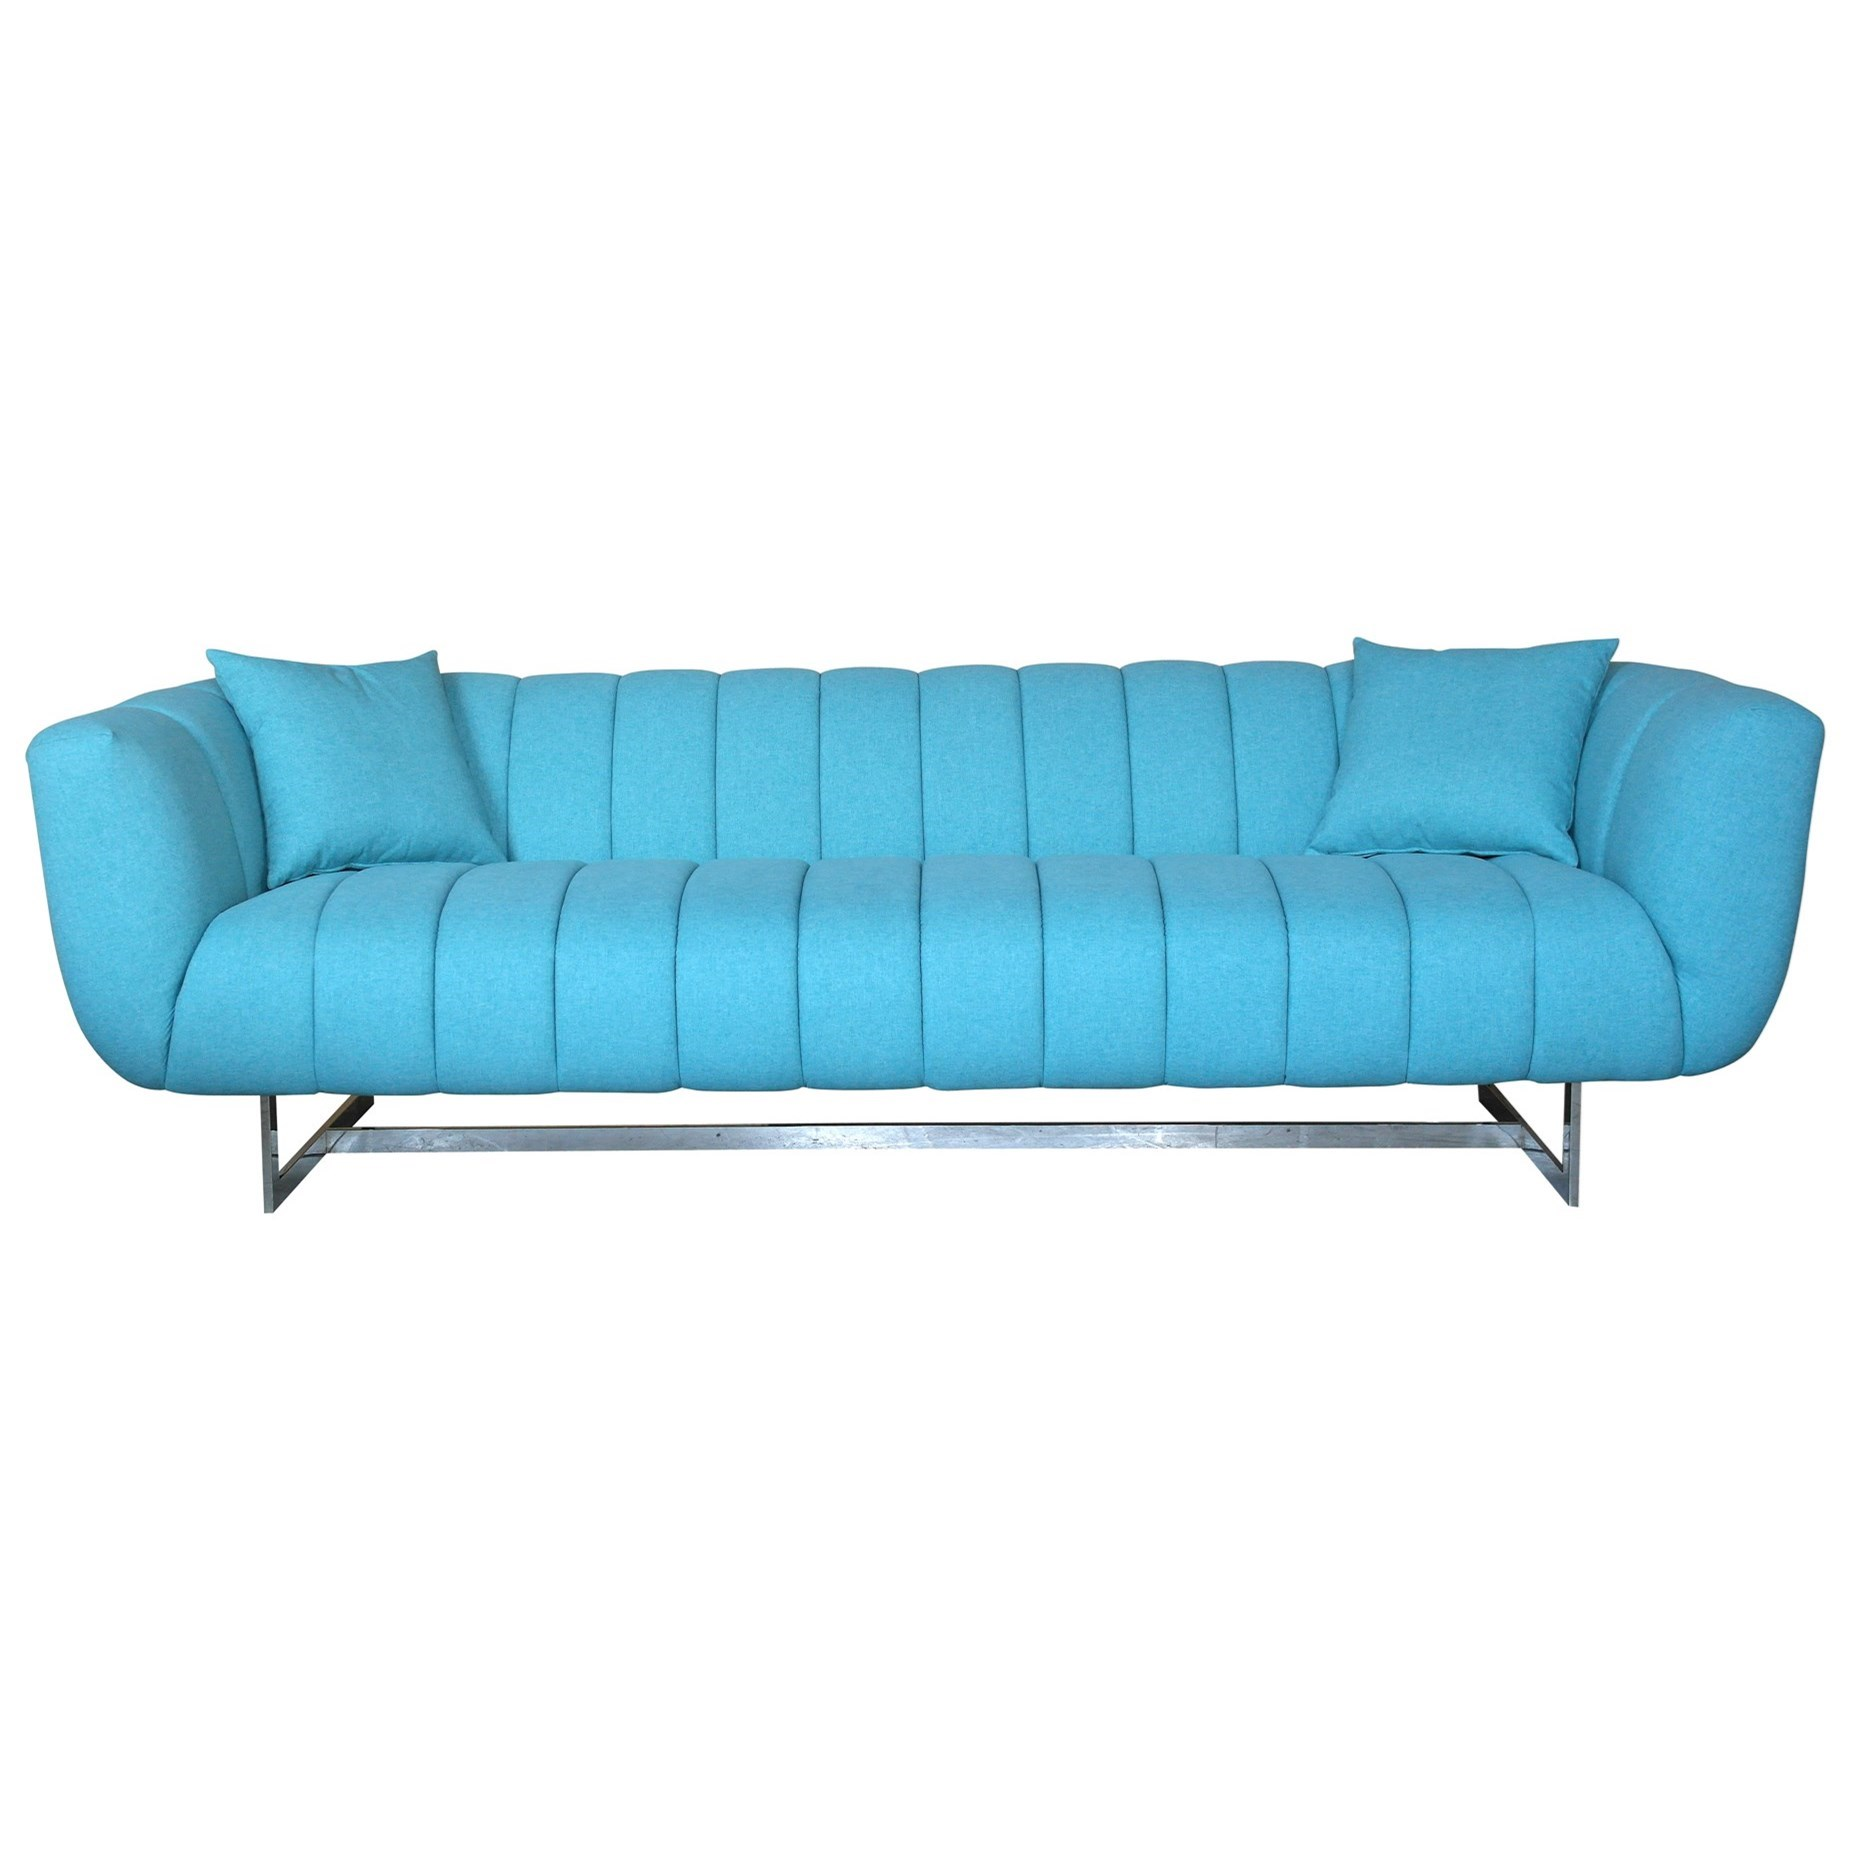 Channel-Tufted Sofa